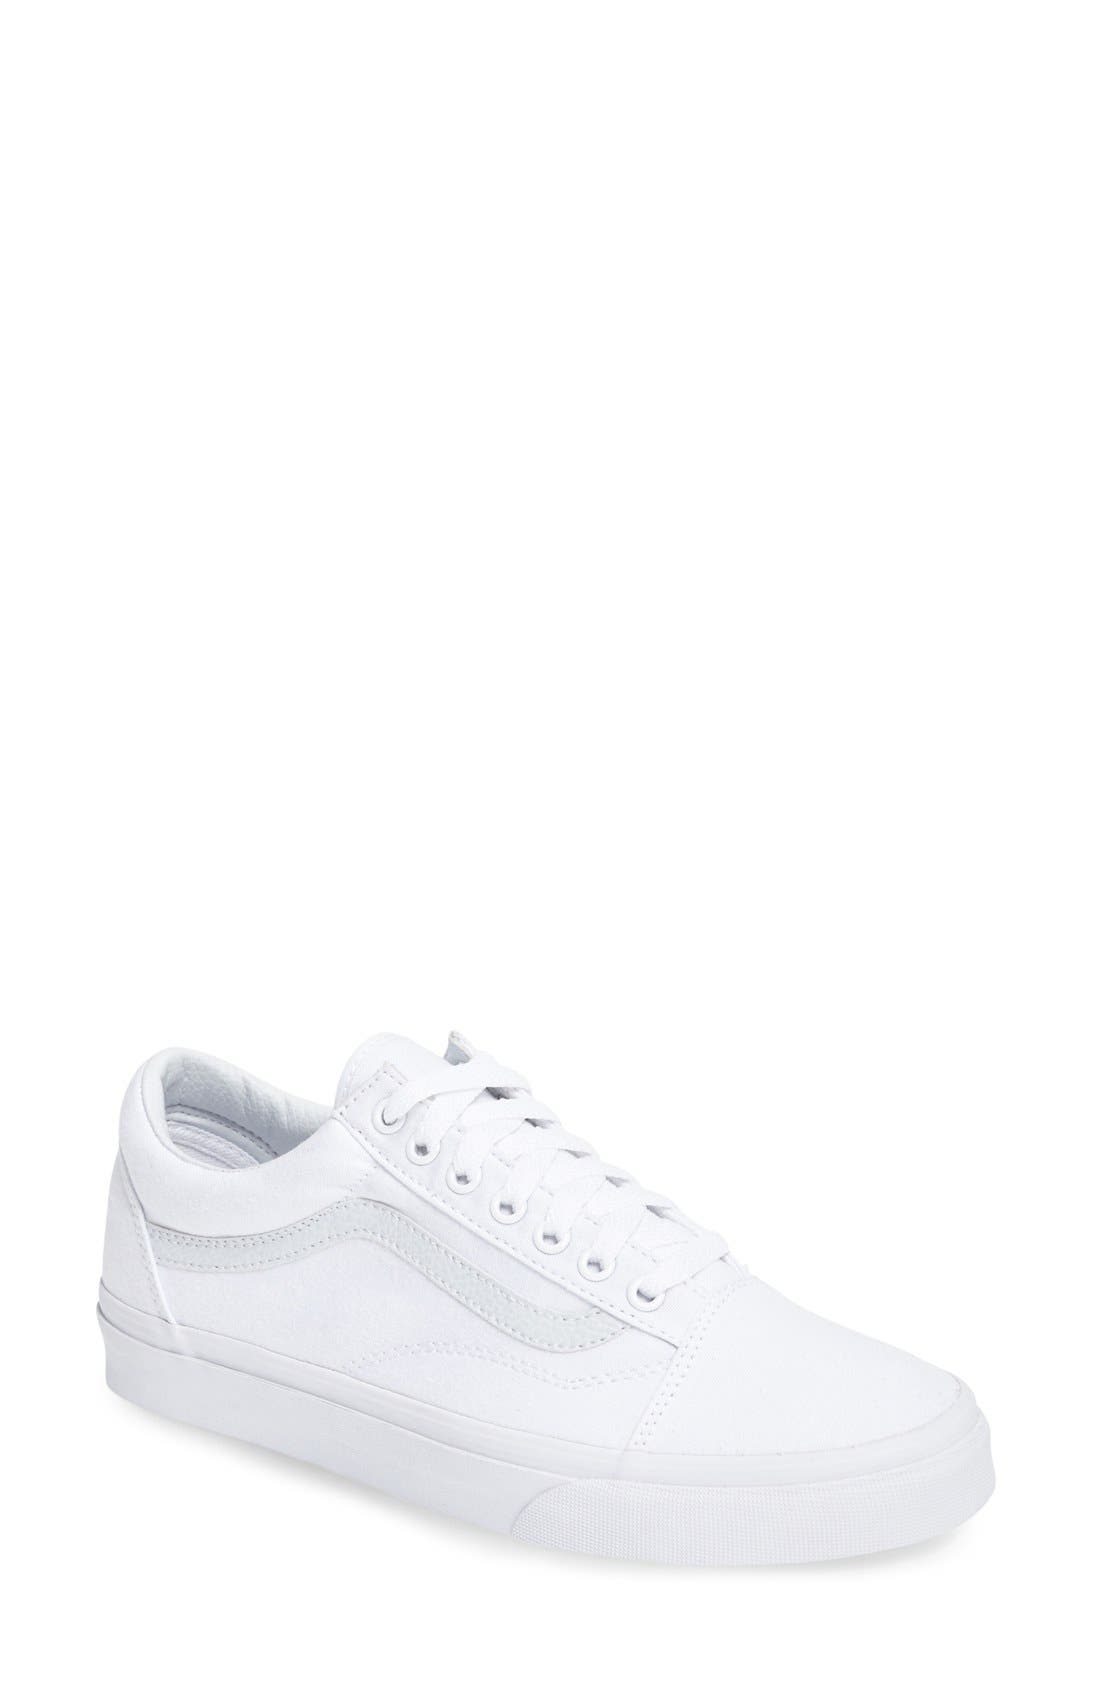 Main Image - Vans 'Old Skool' Sneaker (Men)